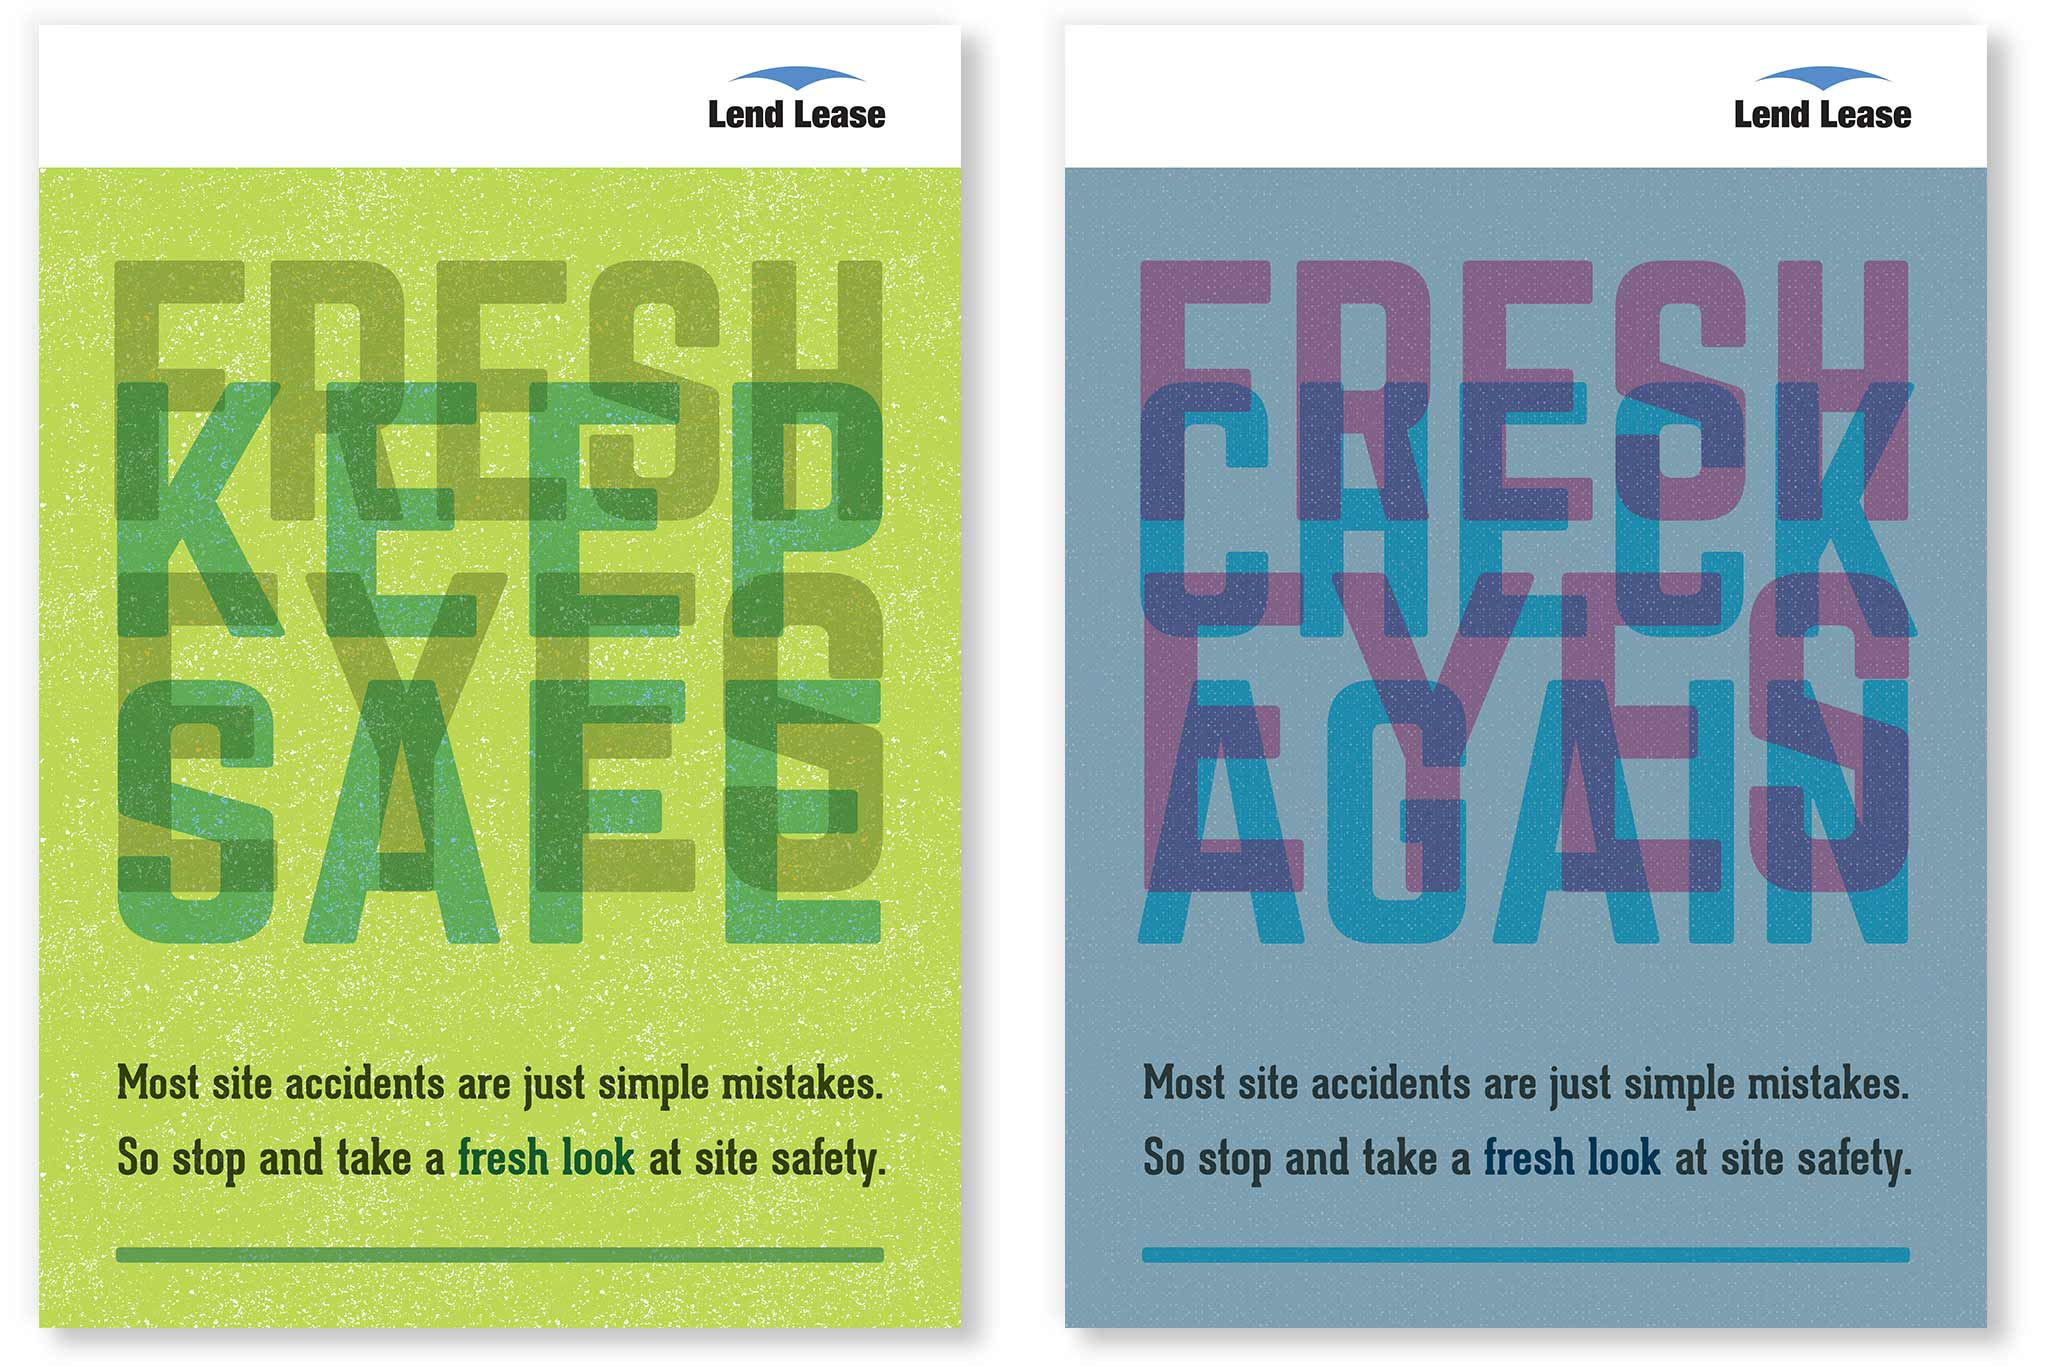 lendlease-site-safety-posters_1b